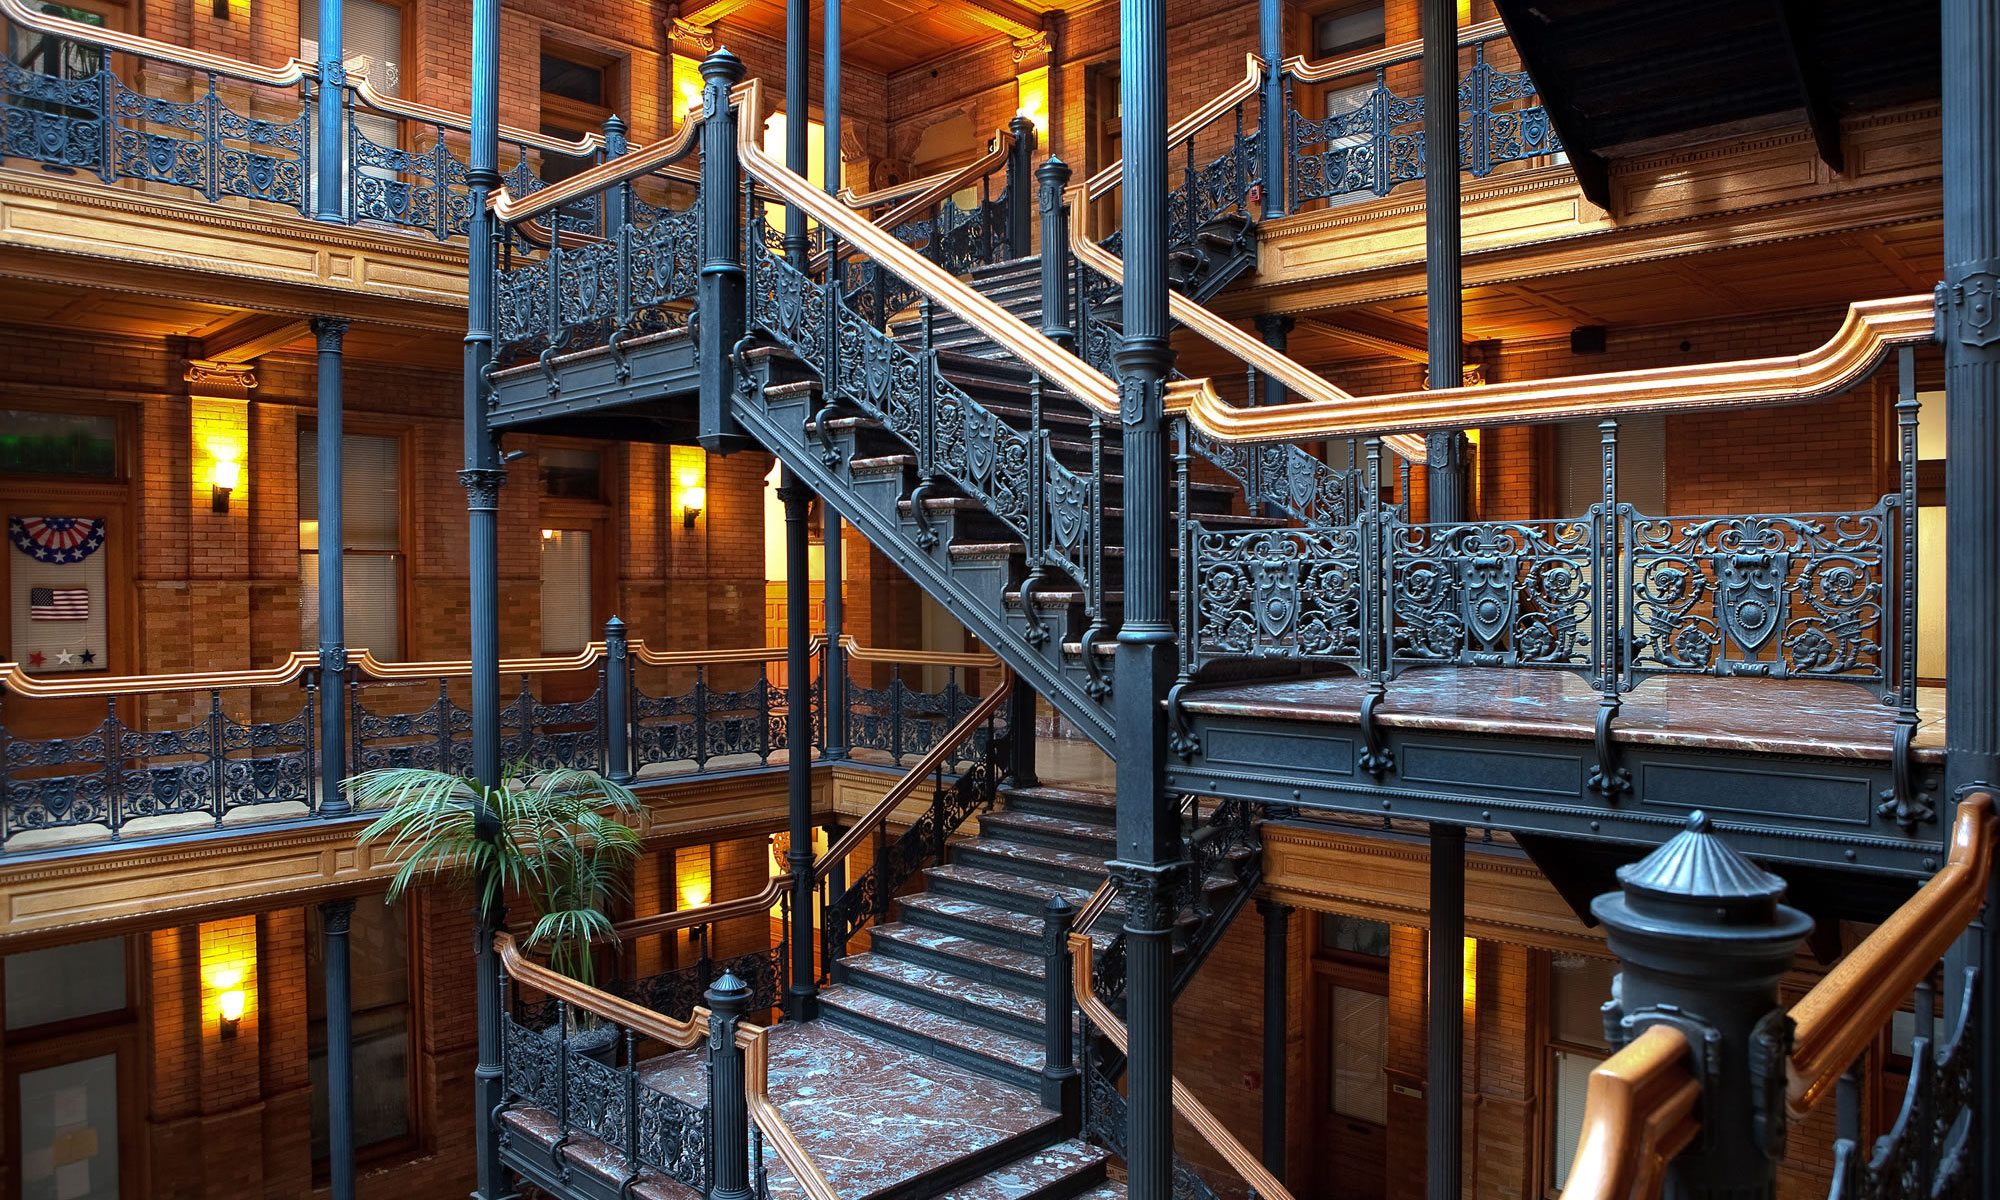 Bradbury building staircase photo